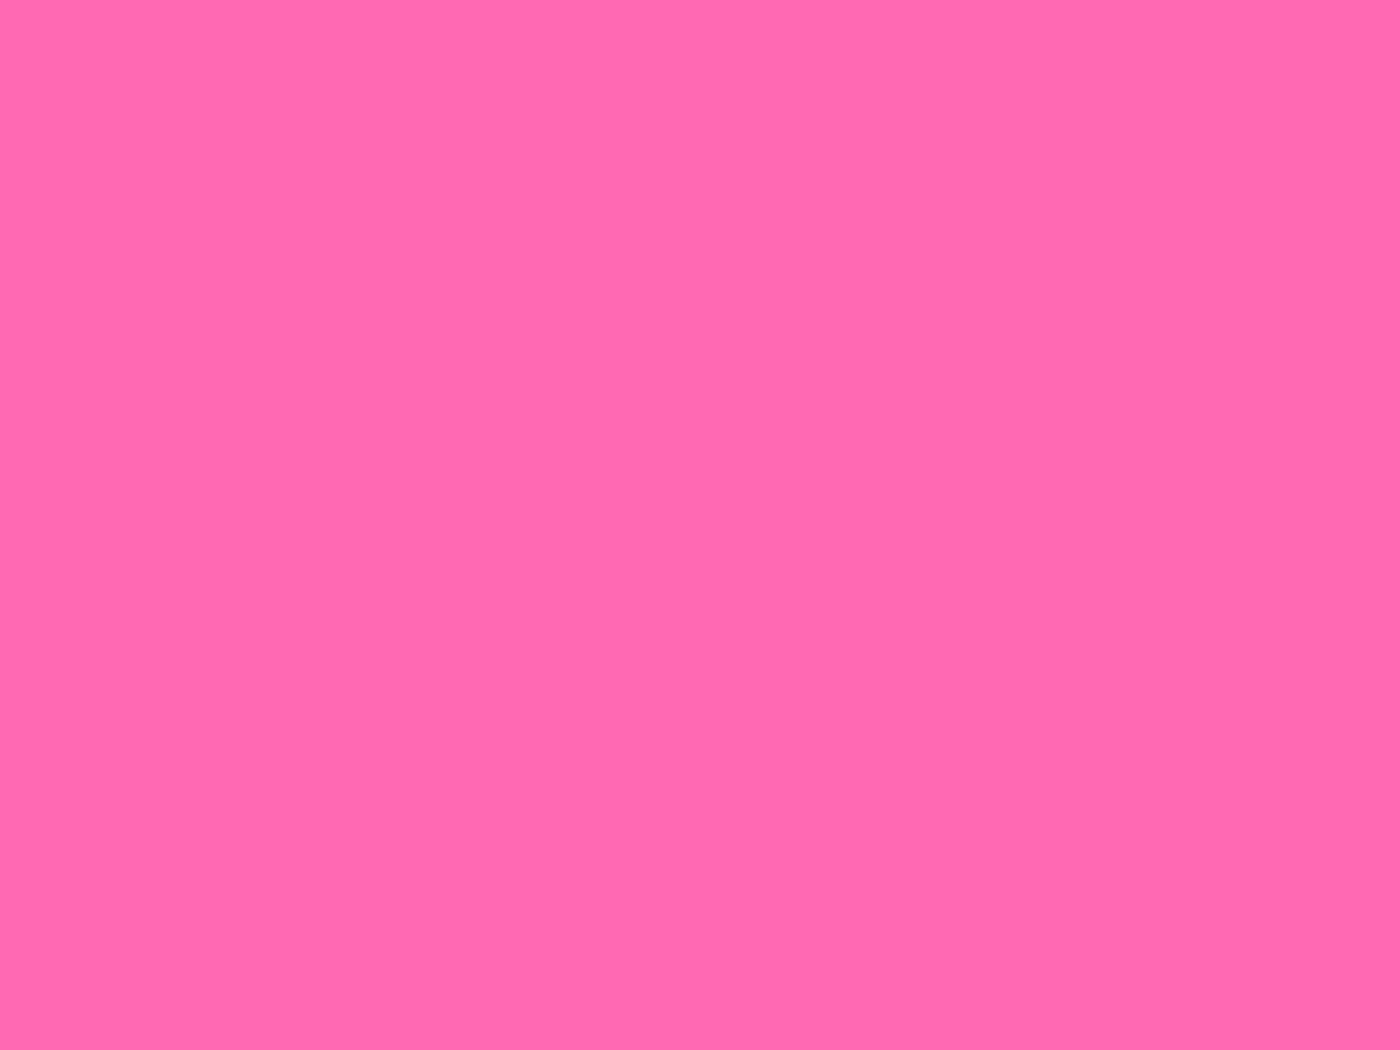 hot pink backgrounds bing images